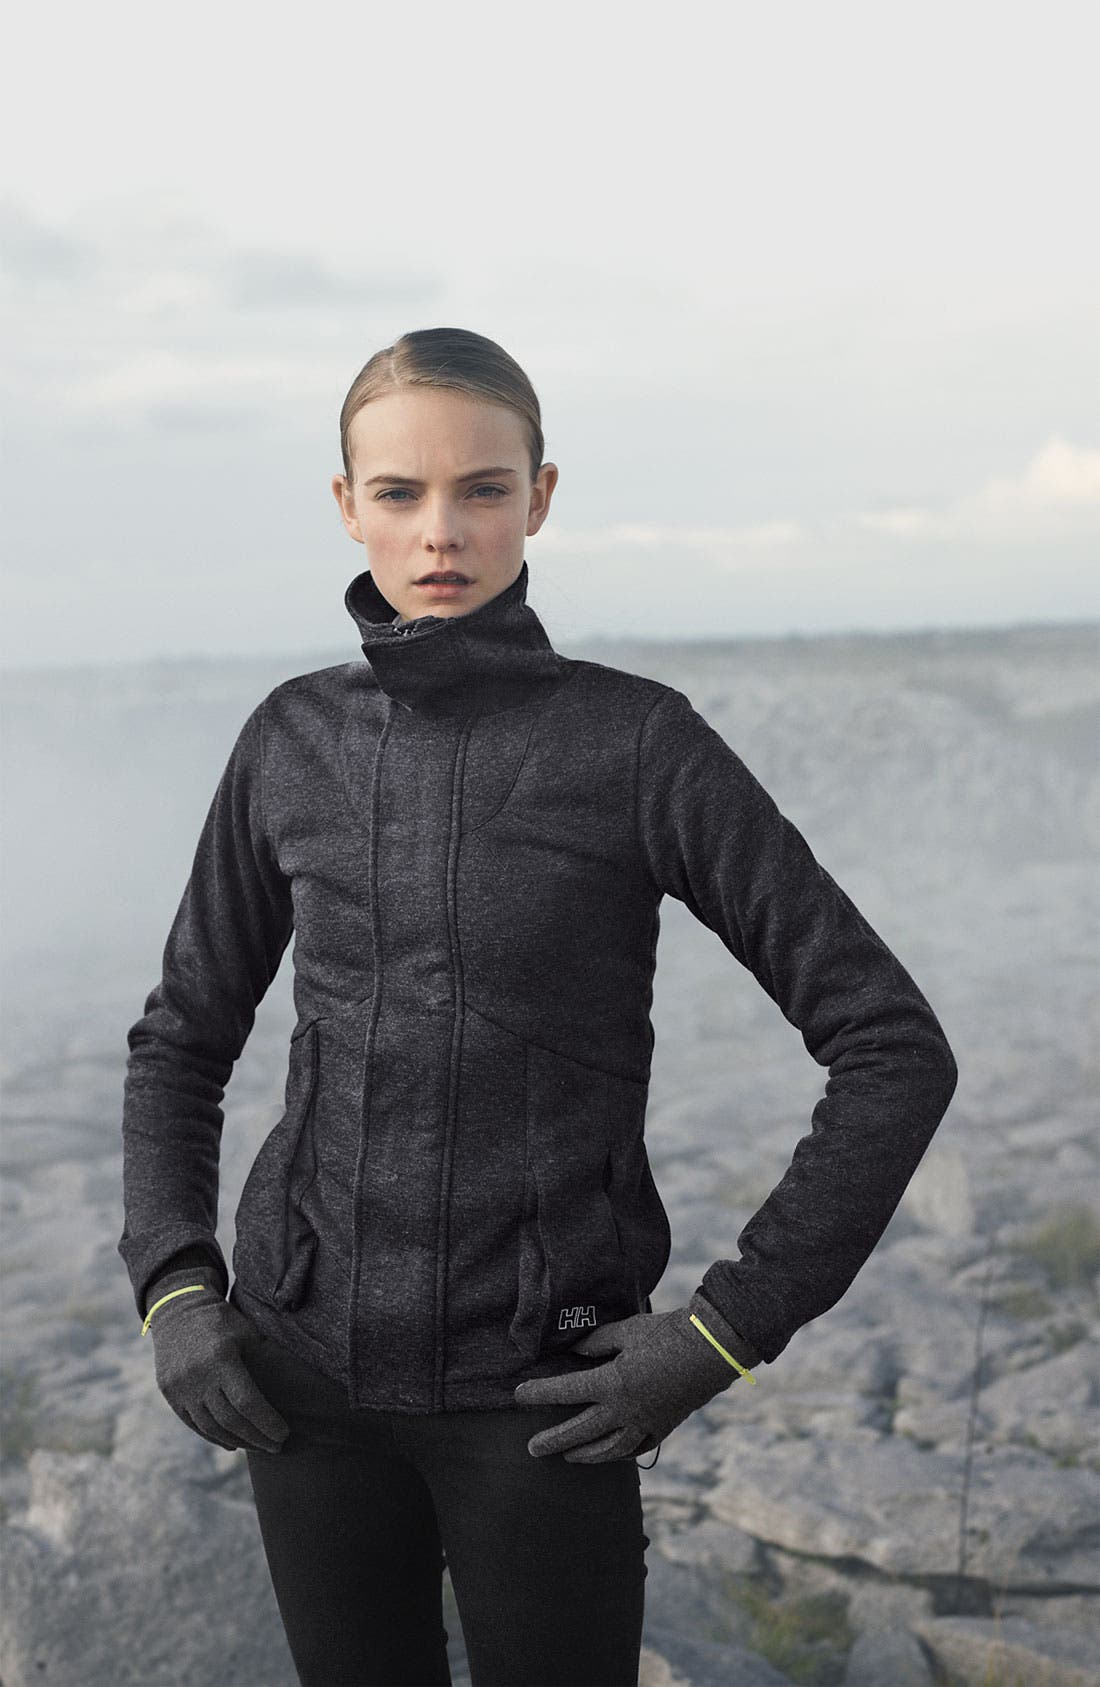 Main Image - Helly Hansen Jacket & Paige Jeans